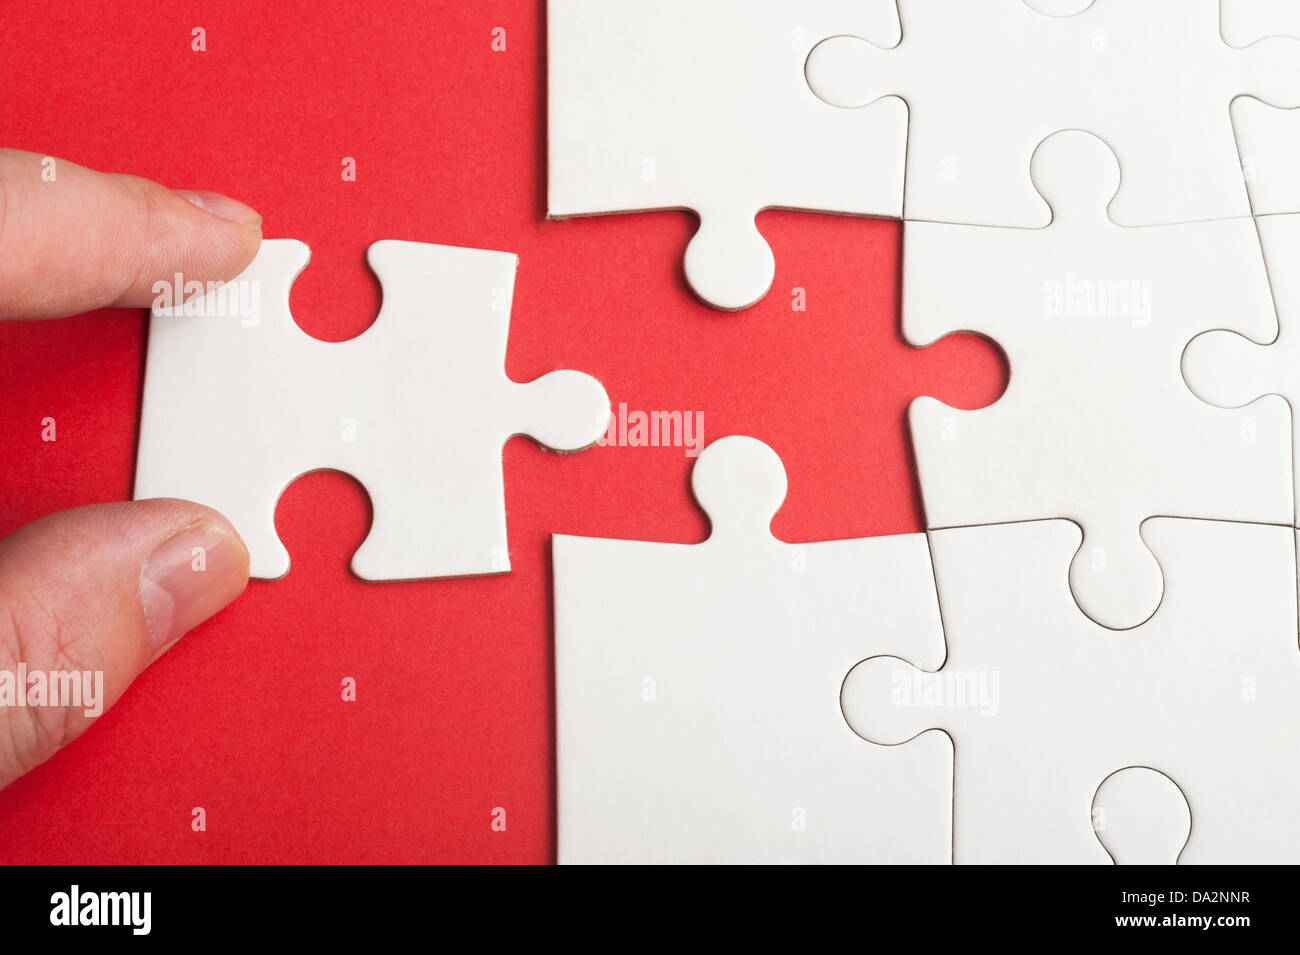 Hand holding puzzle piece and inserting it into group of white paper jigsaw puzzles - Stock Image